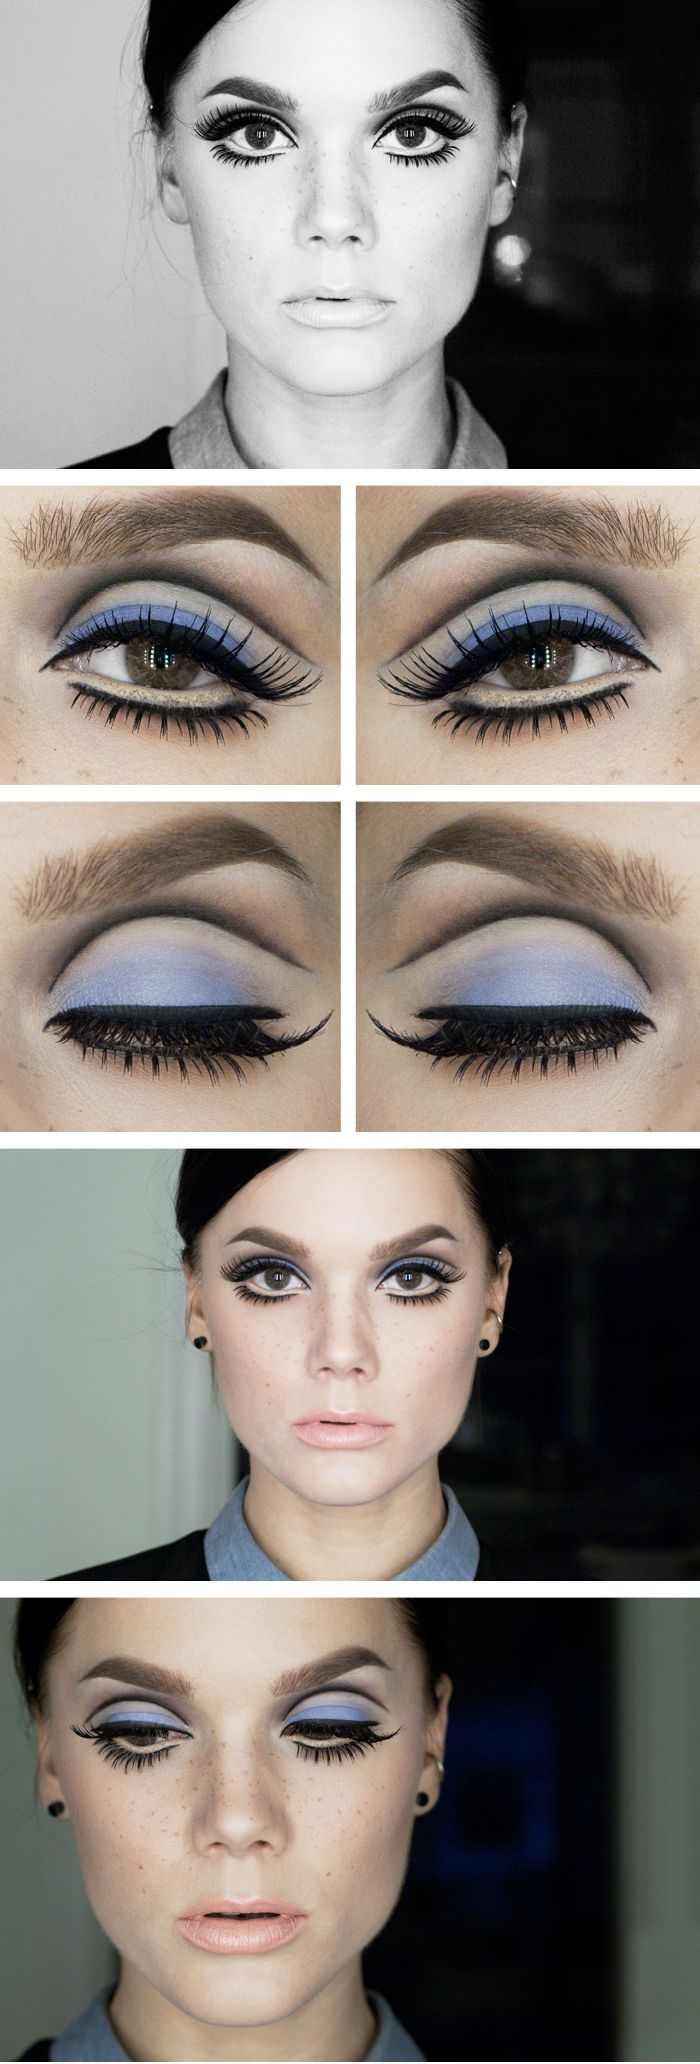 15 Beauty Hacks That Will Help You Look Exactly Like Twiggy